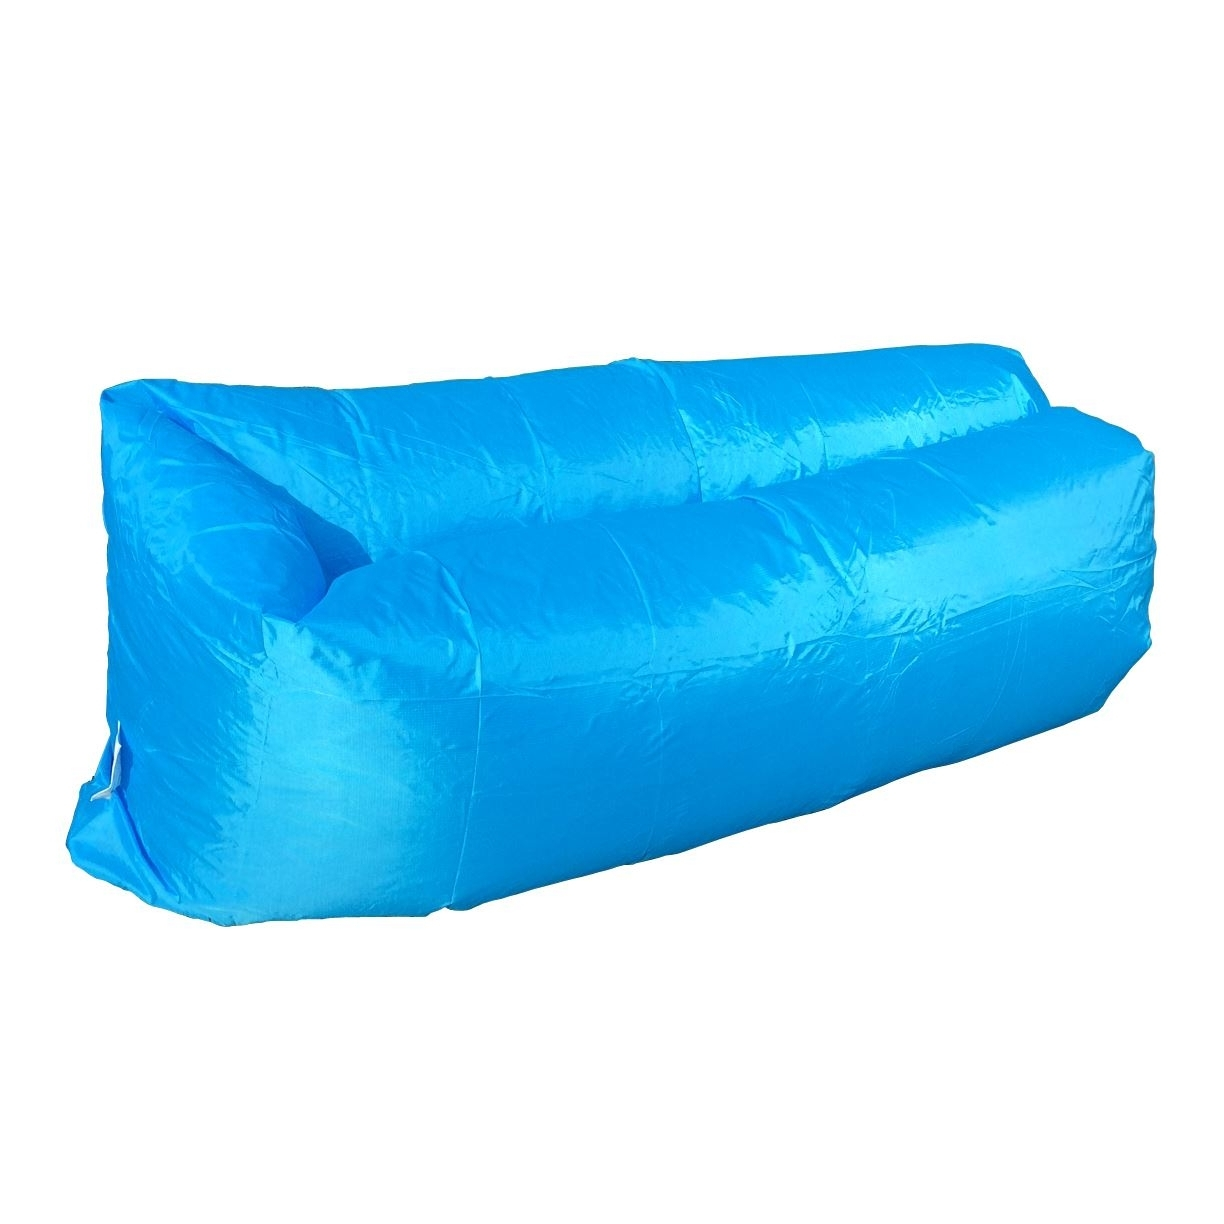 Favorite Inflatable Sofas And Chairs In Inflatable Sofa Chair Air Bed Luxury Seat Camping Festival Holiday (View 9 of 15)